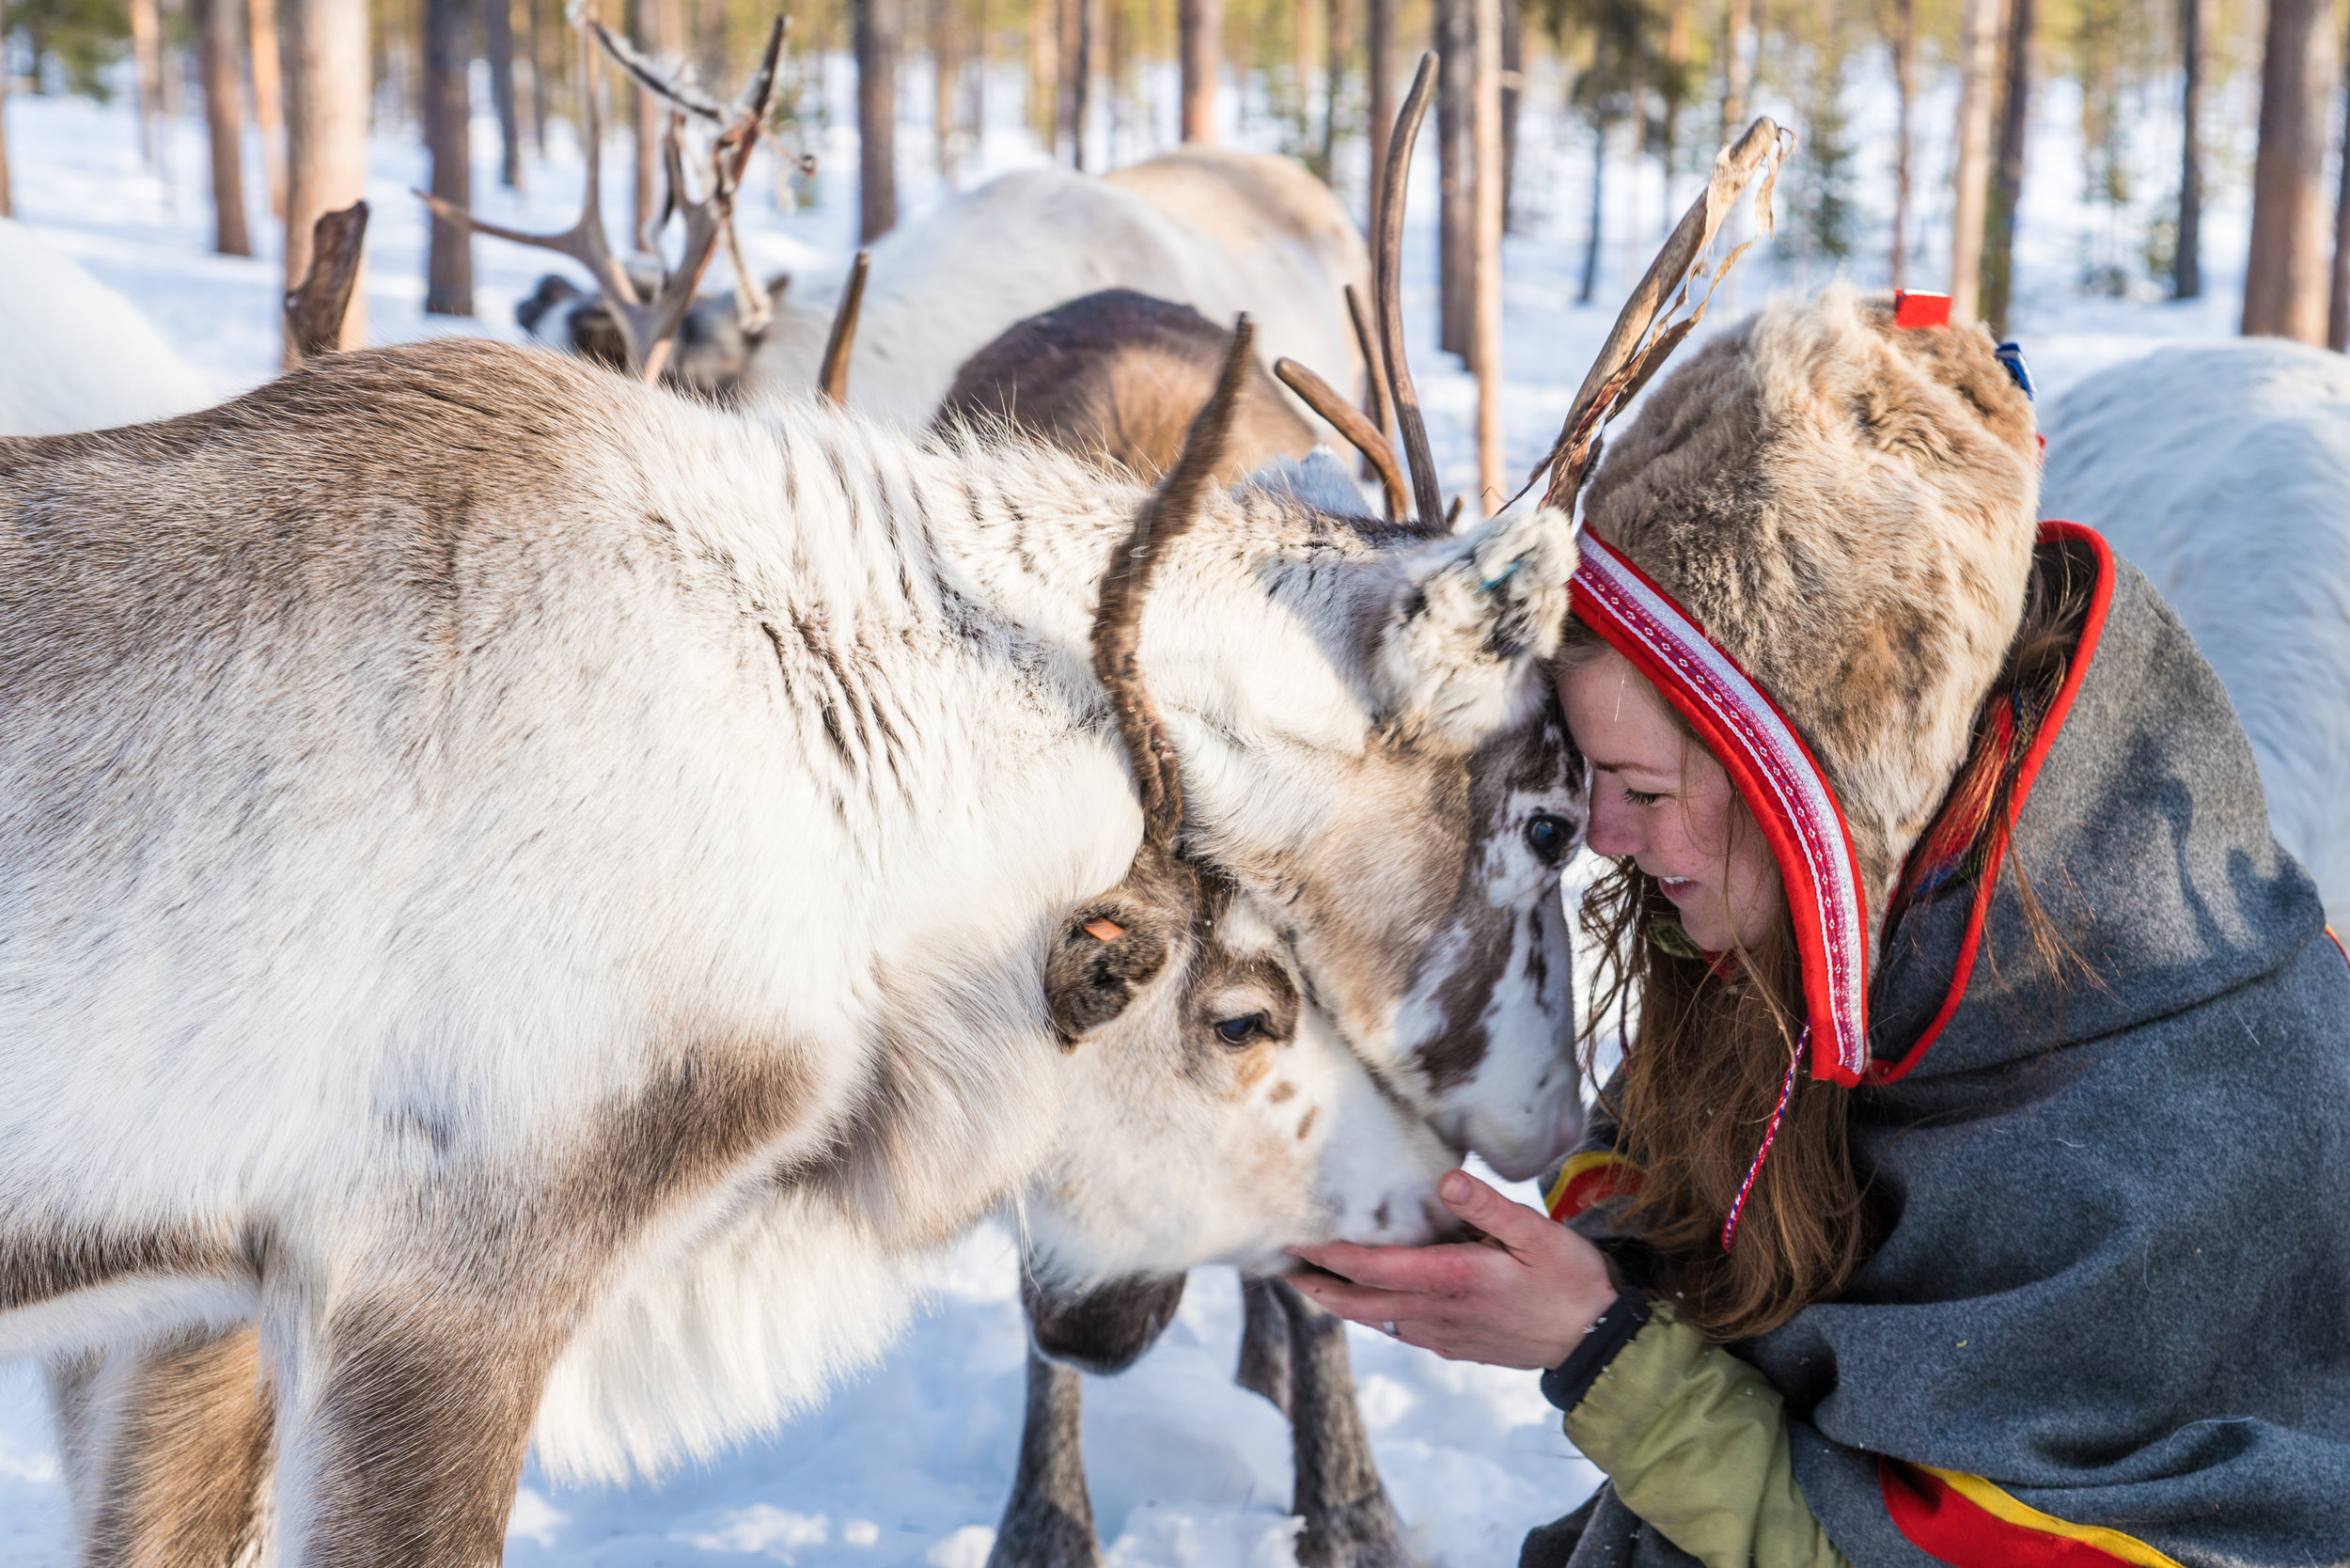 Meet Anna and her reindeer in Jokkmokk